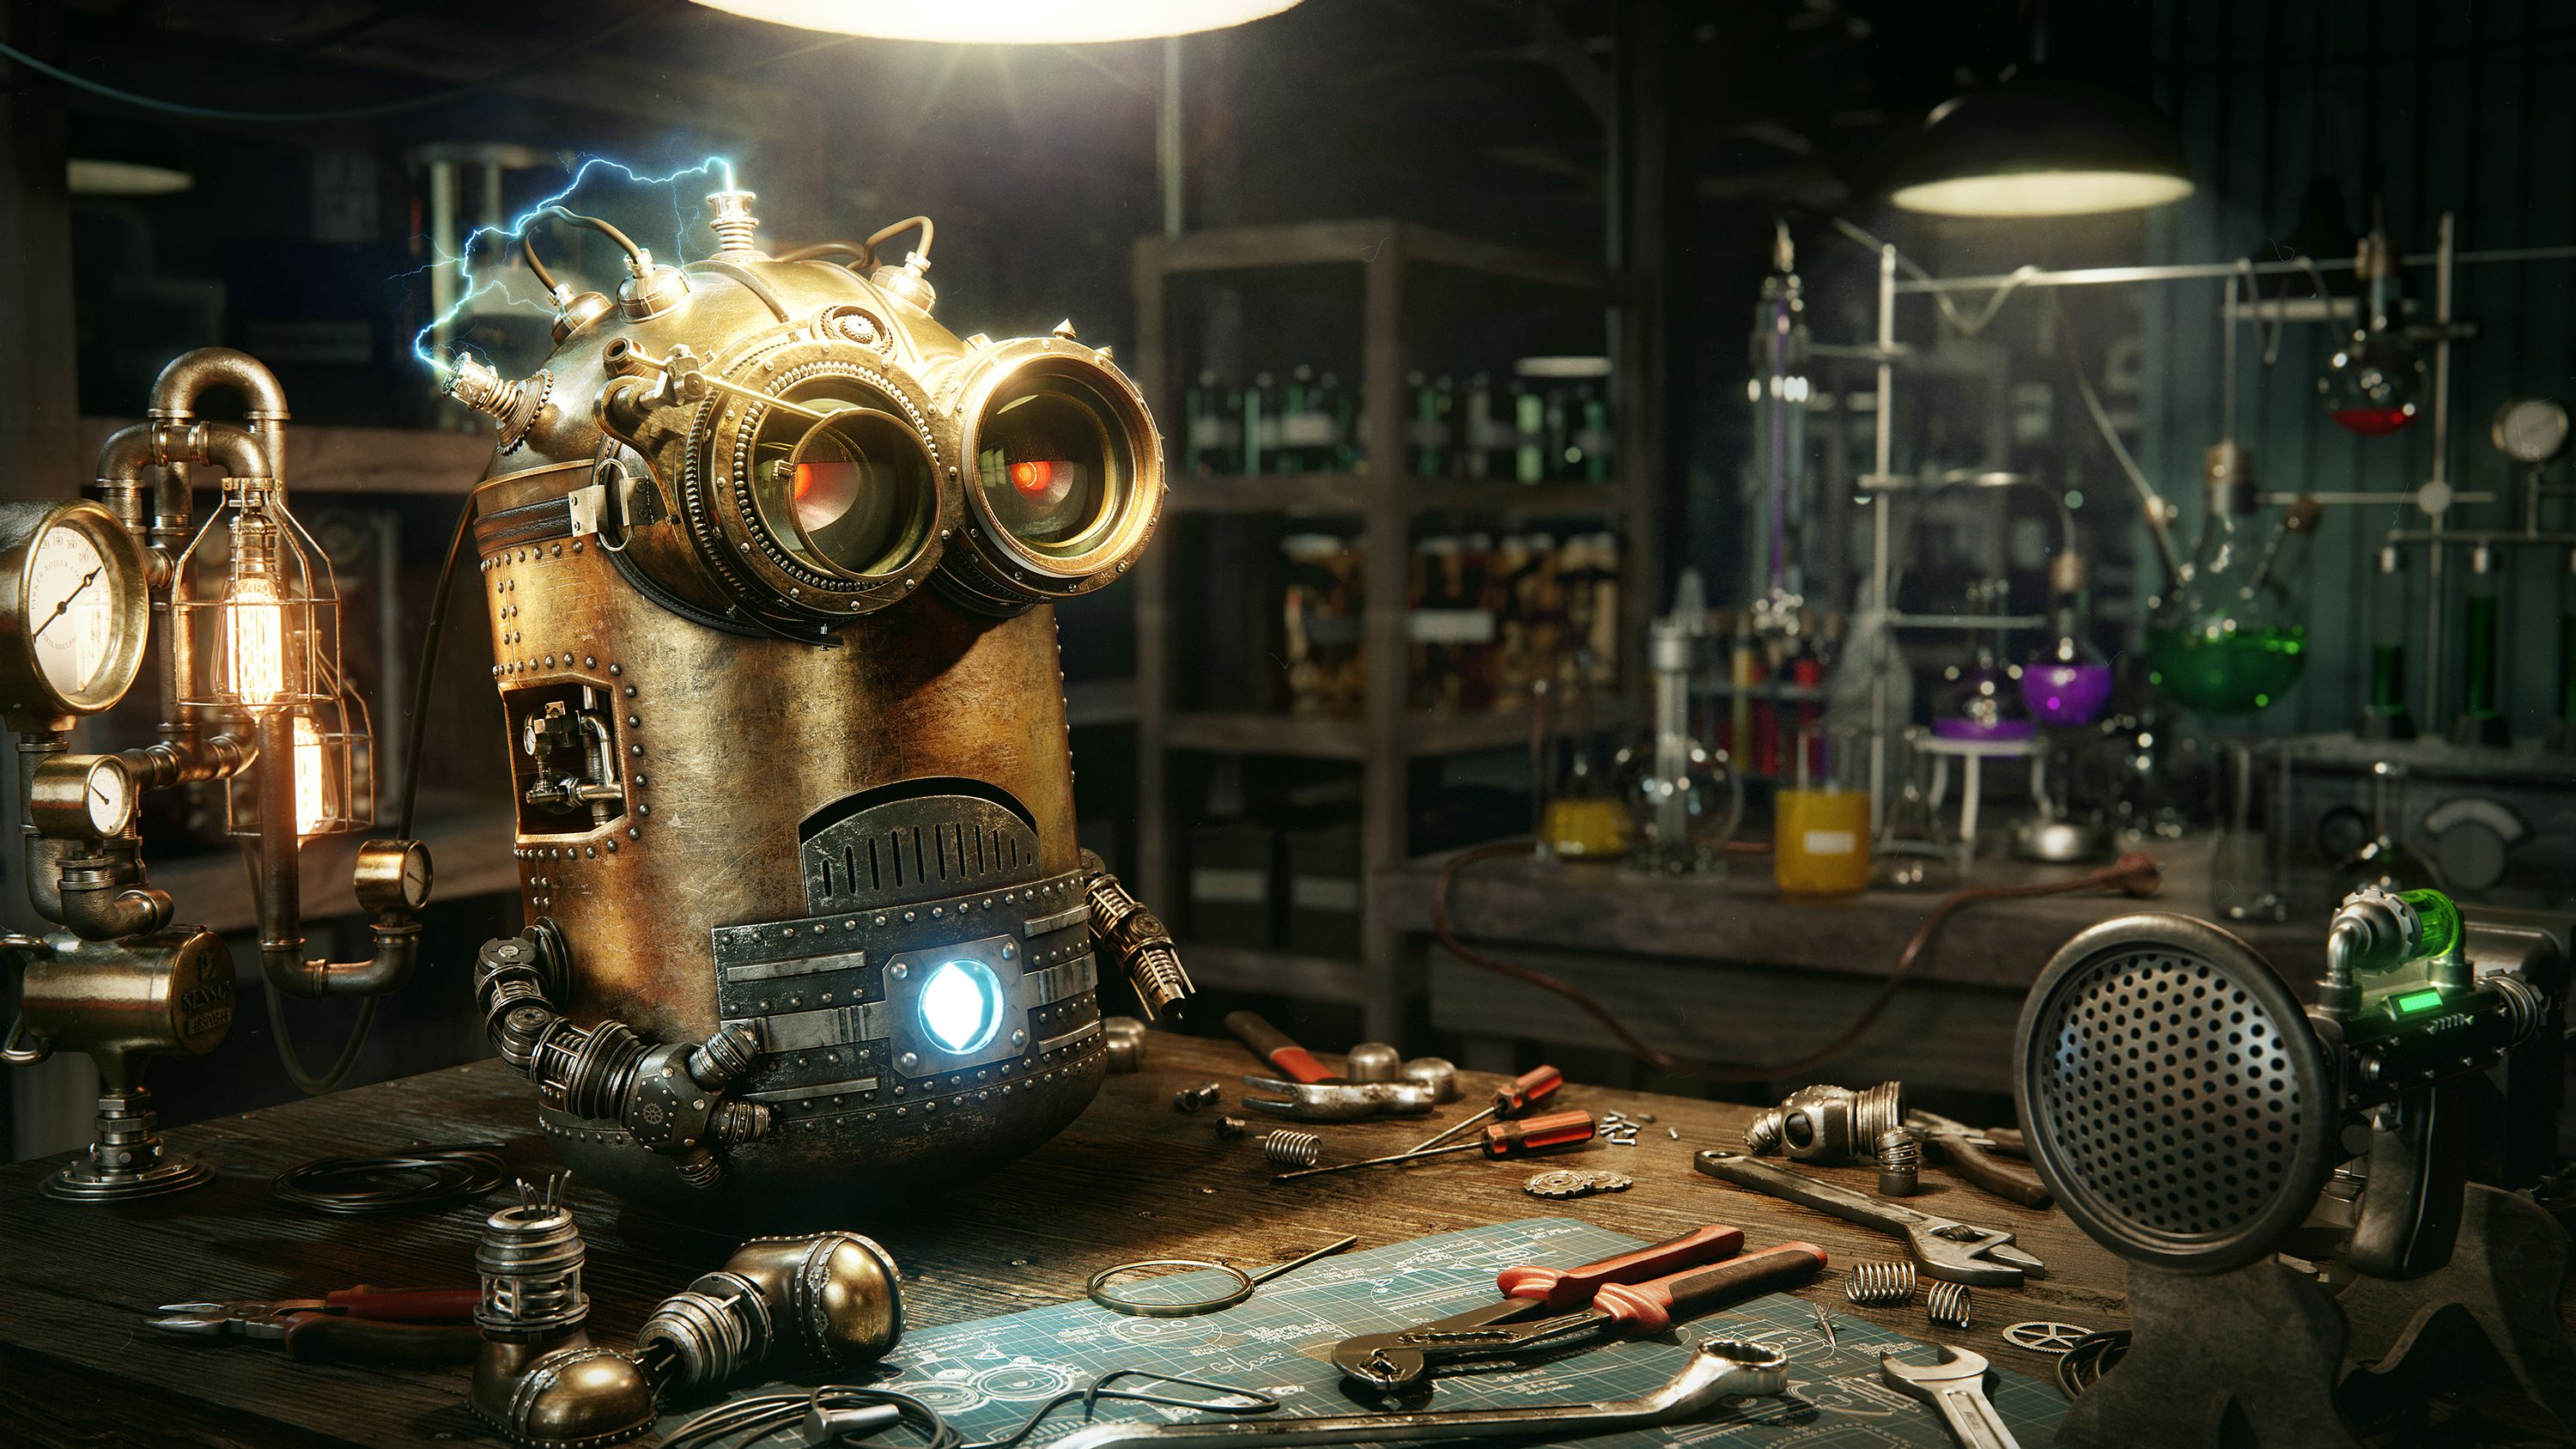 This Is Steampunk Minion Breakdown By Dmitriy Ten On Vimeo,